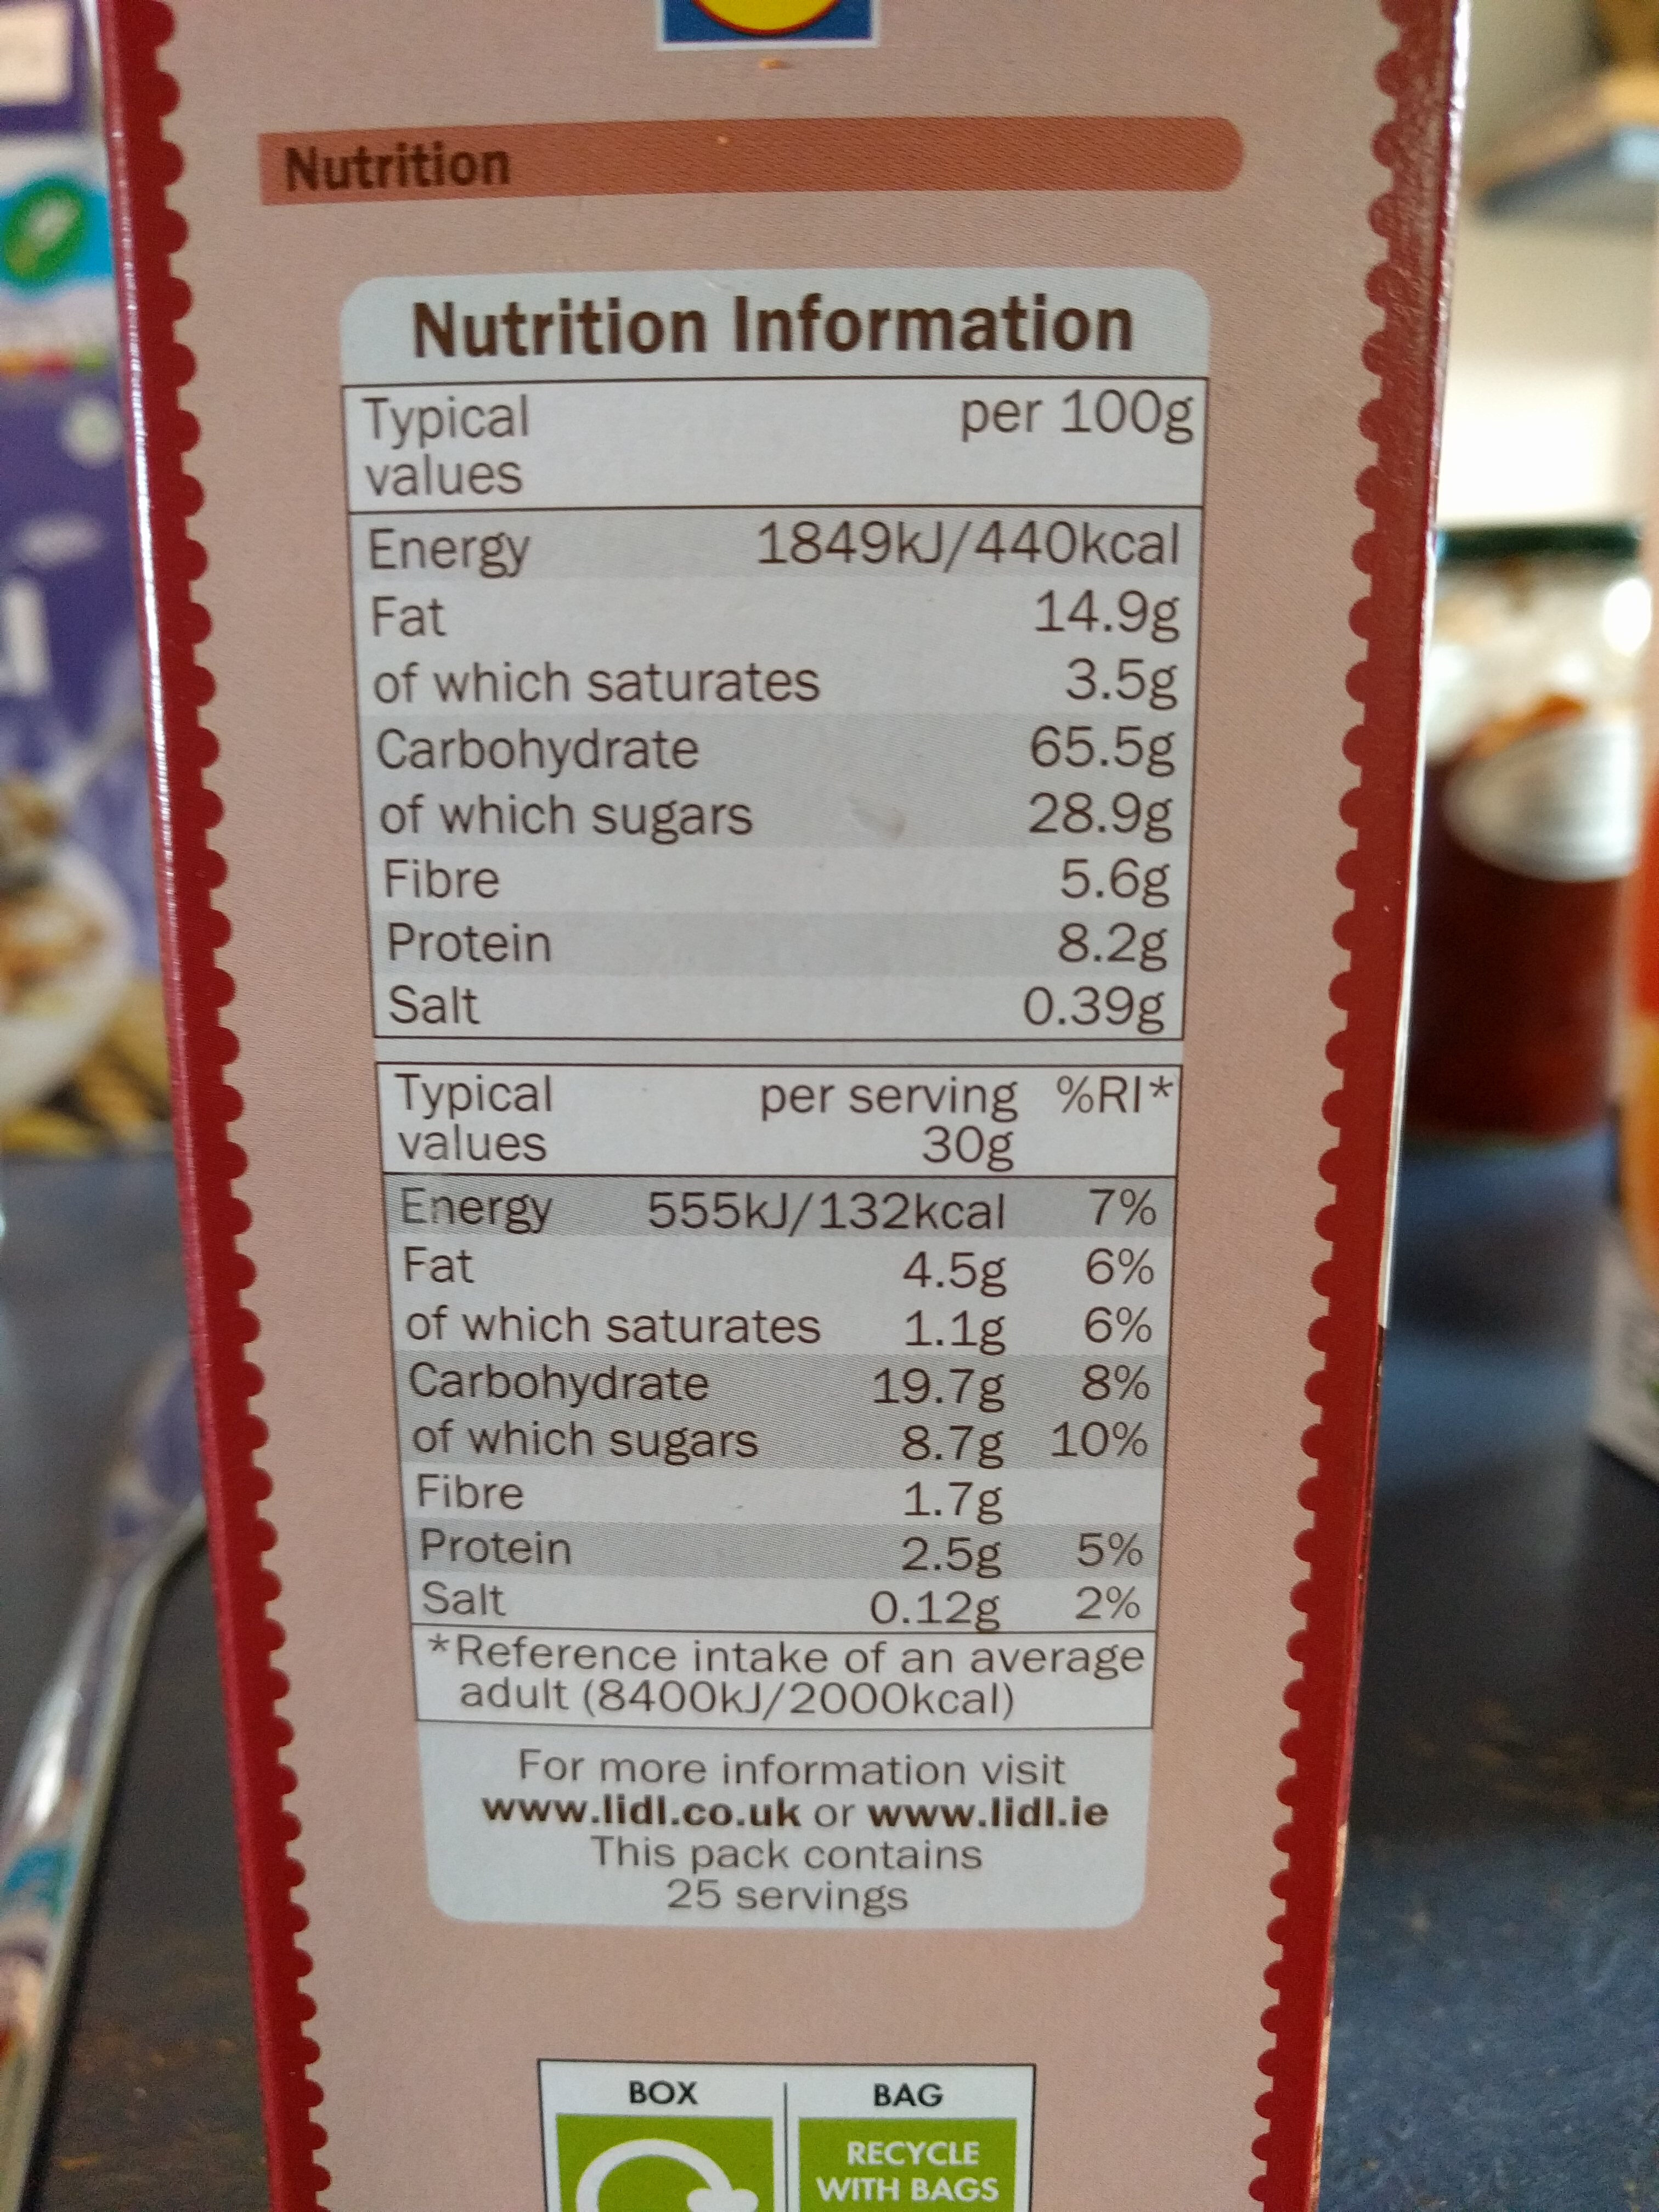 Nougat pillows - coeur fondant goût chocolat & noisette - Nutrition facts - en